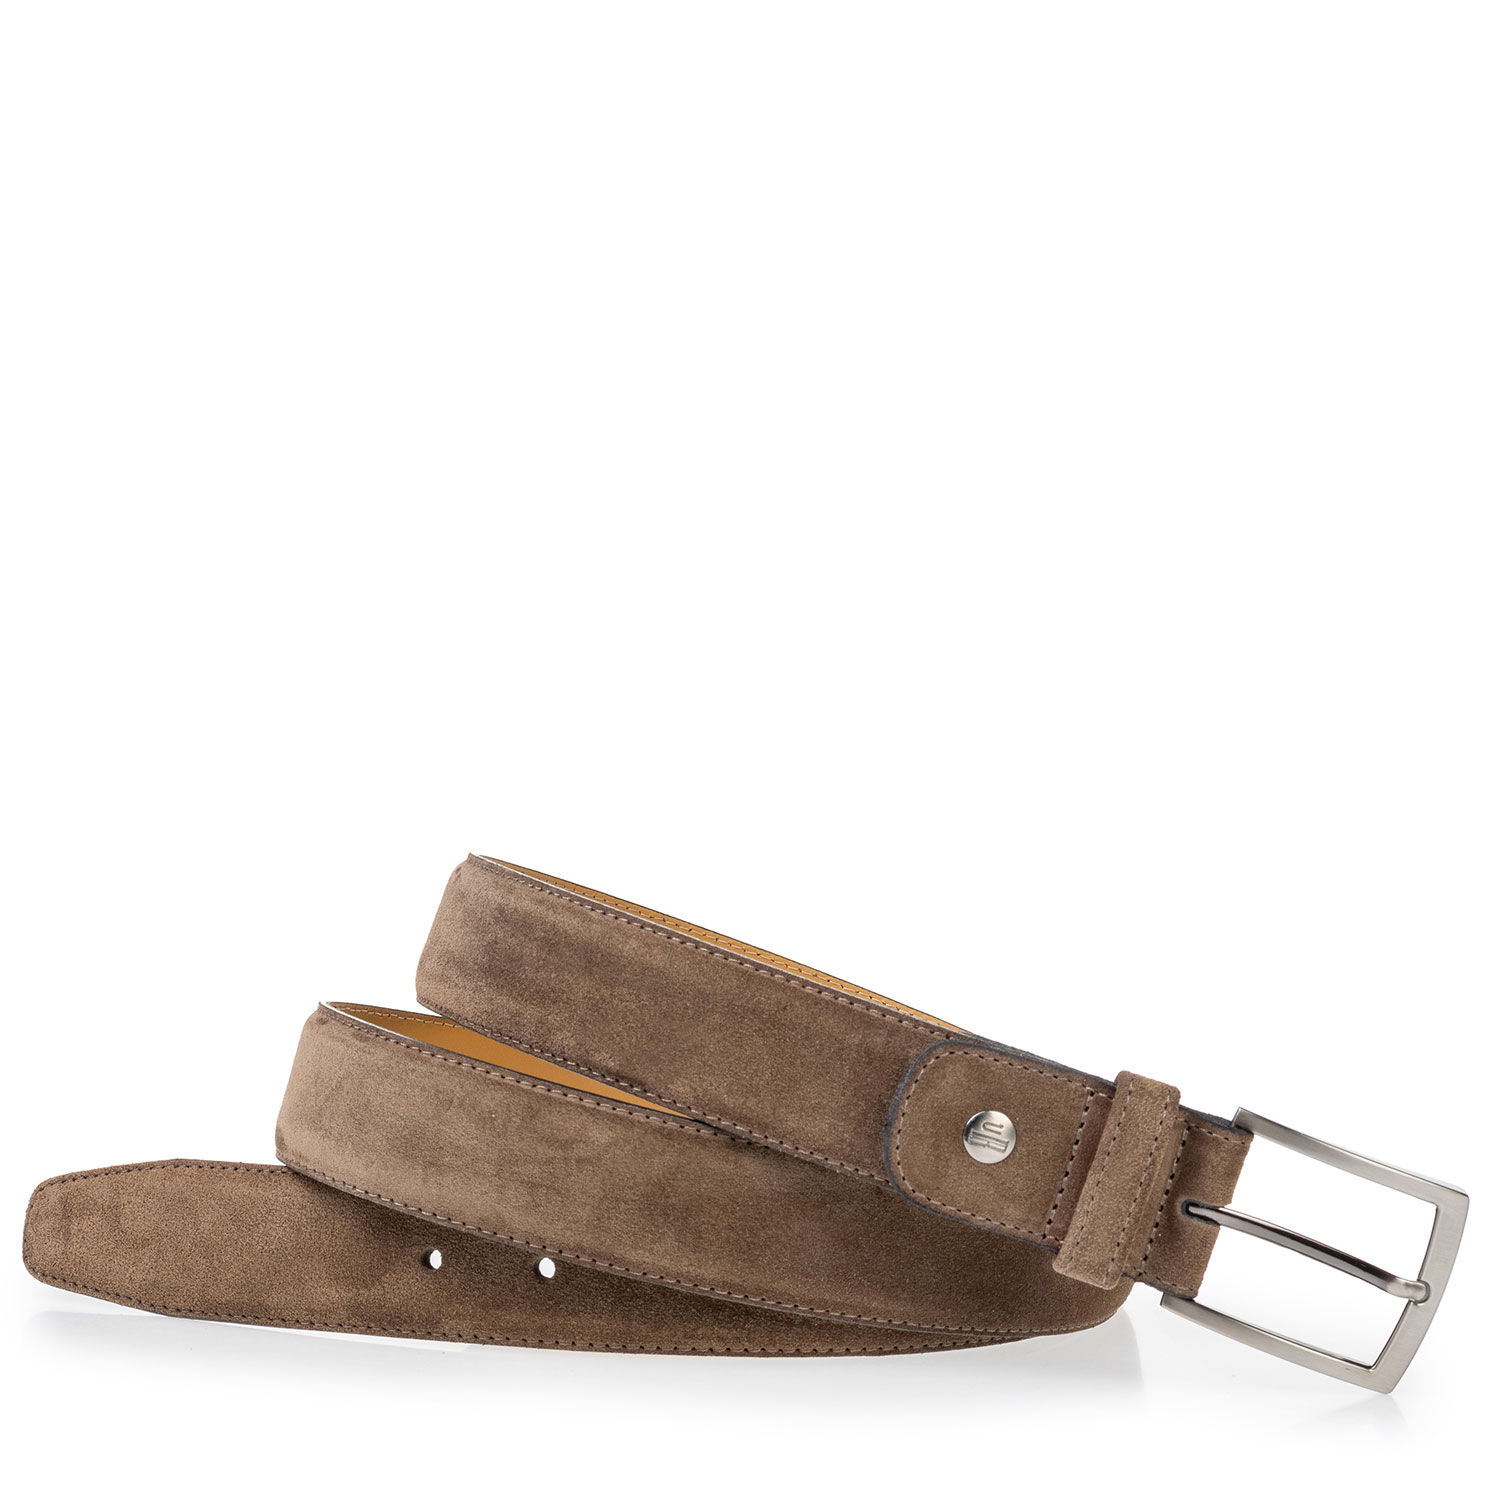 75533/53 - Suede leather belt taupe